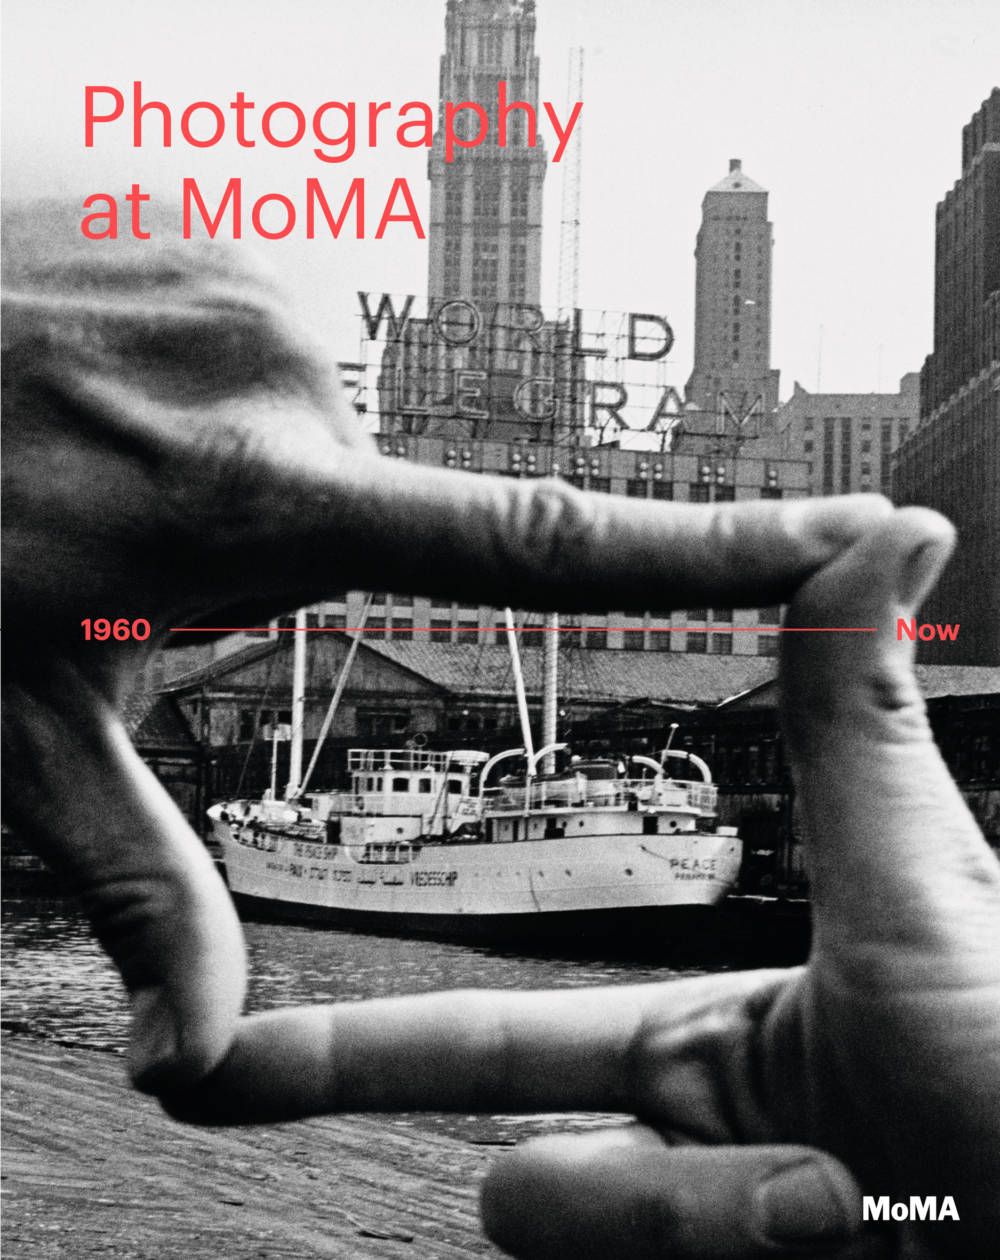 Photography at MOMA: 1960 - Now